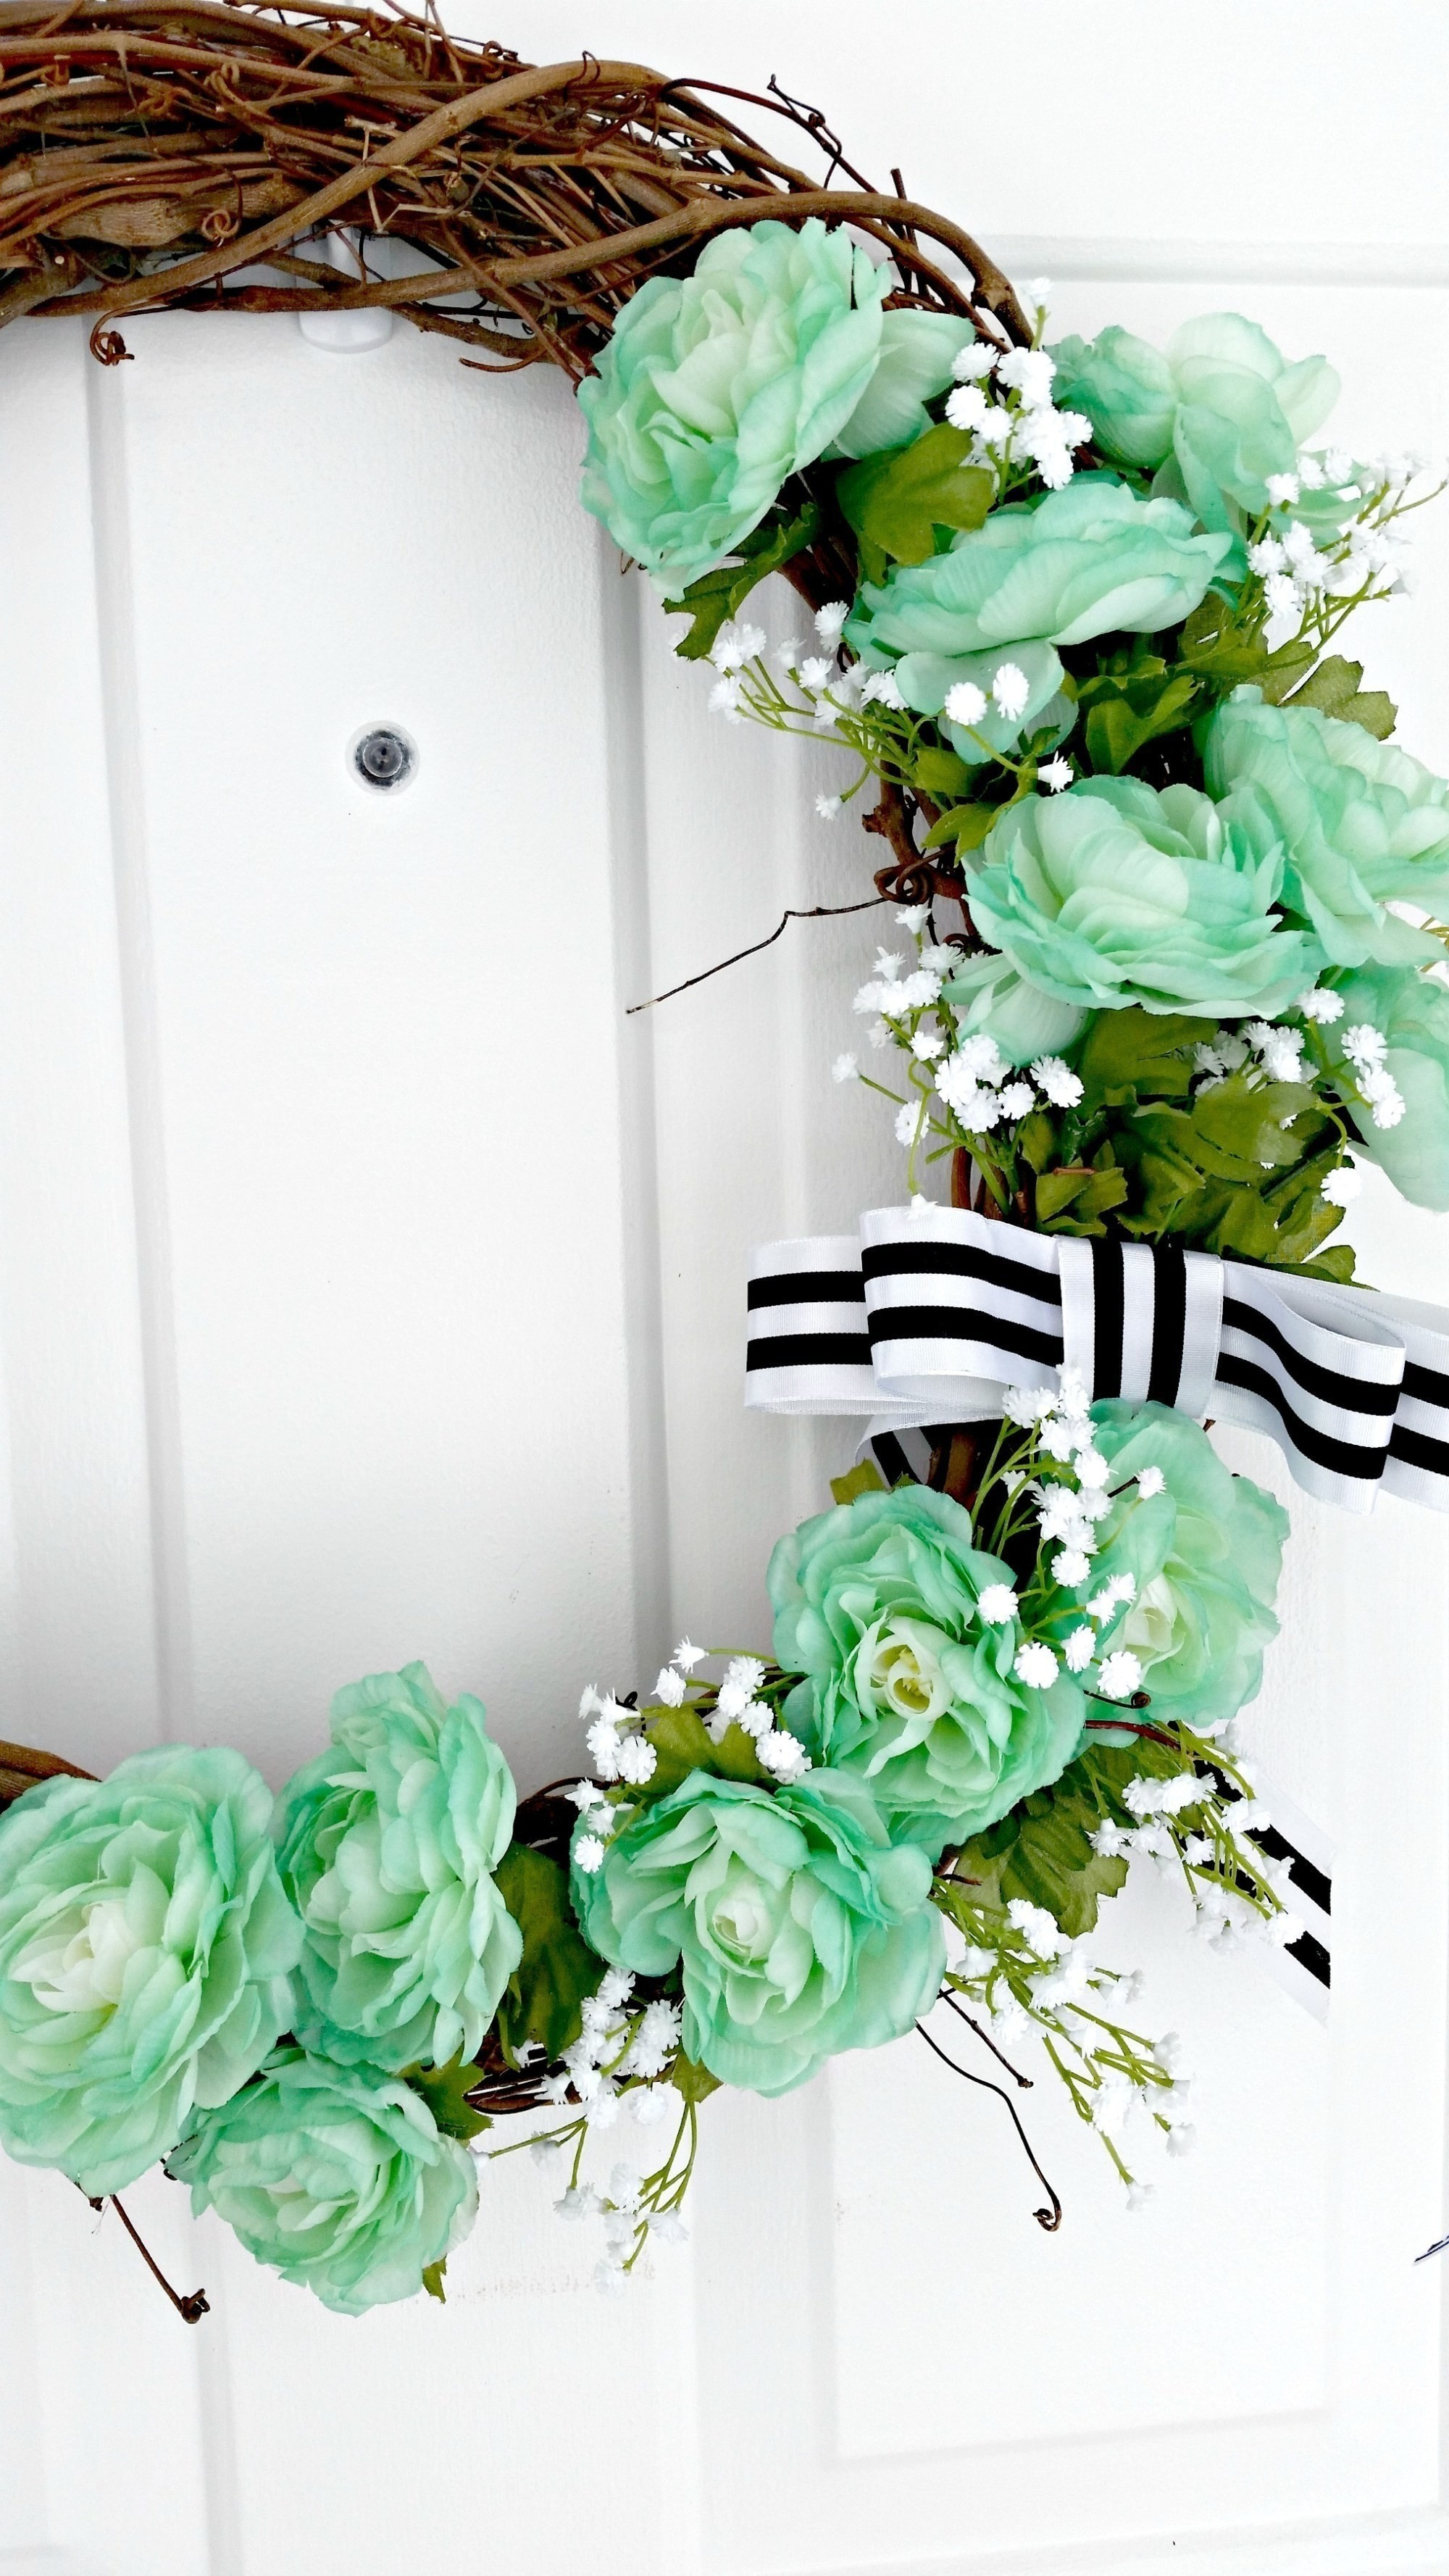 Minty Spring Grapevine Wreath 183 How To Make A Wreath 183 Decorating On Cut Out Keep